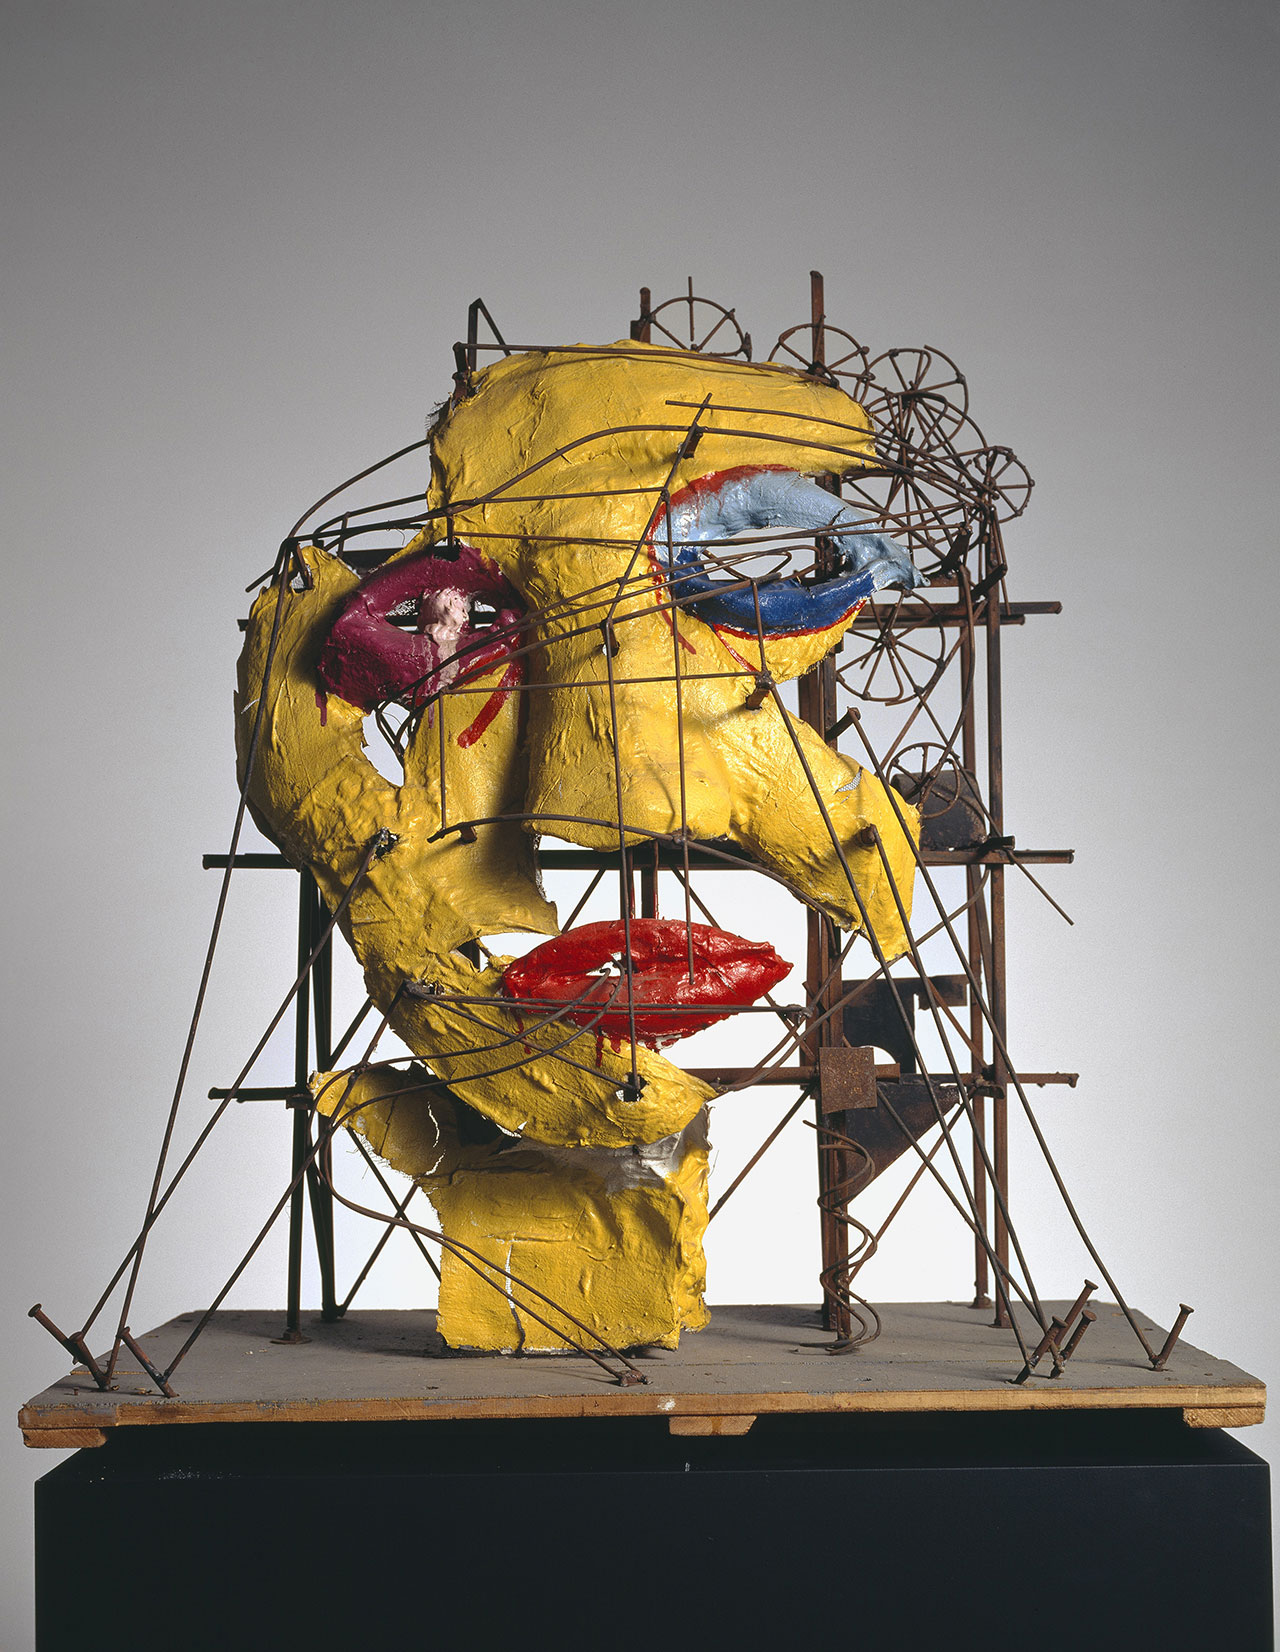 Jean Tinguely and Niki de Saint Phalle, Le Cyclop - La Tête, 1970. Collection Museum Tinguely Basel - a cultural commitment of Roche, donation Niki de Saint Phalle. Photo: Christian Baur, c/o Pictoright Amsterdam, 2016.